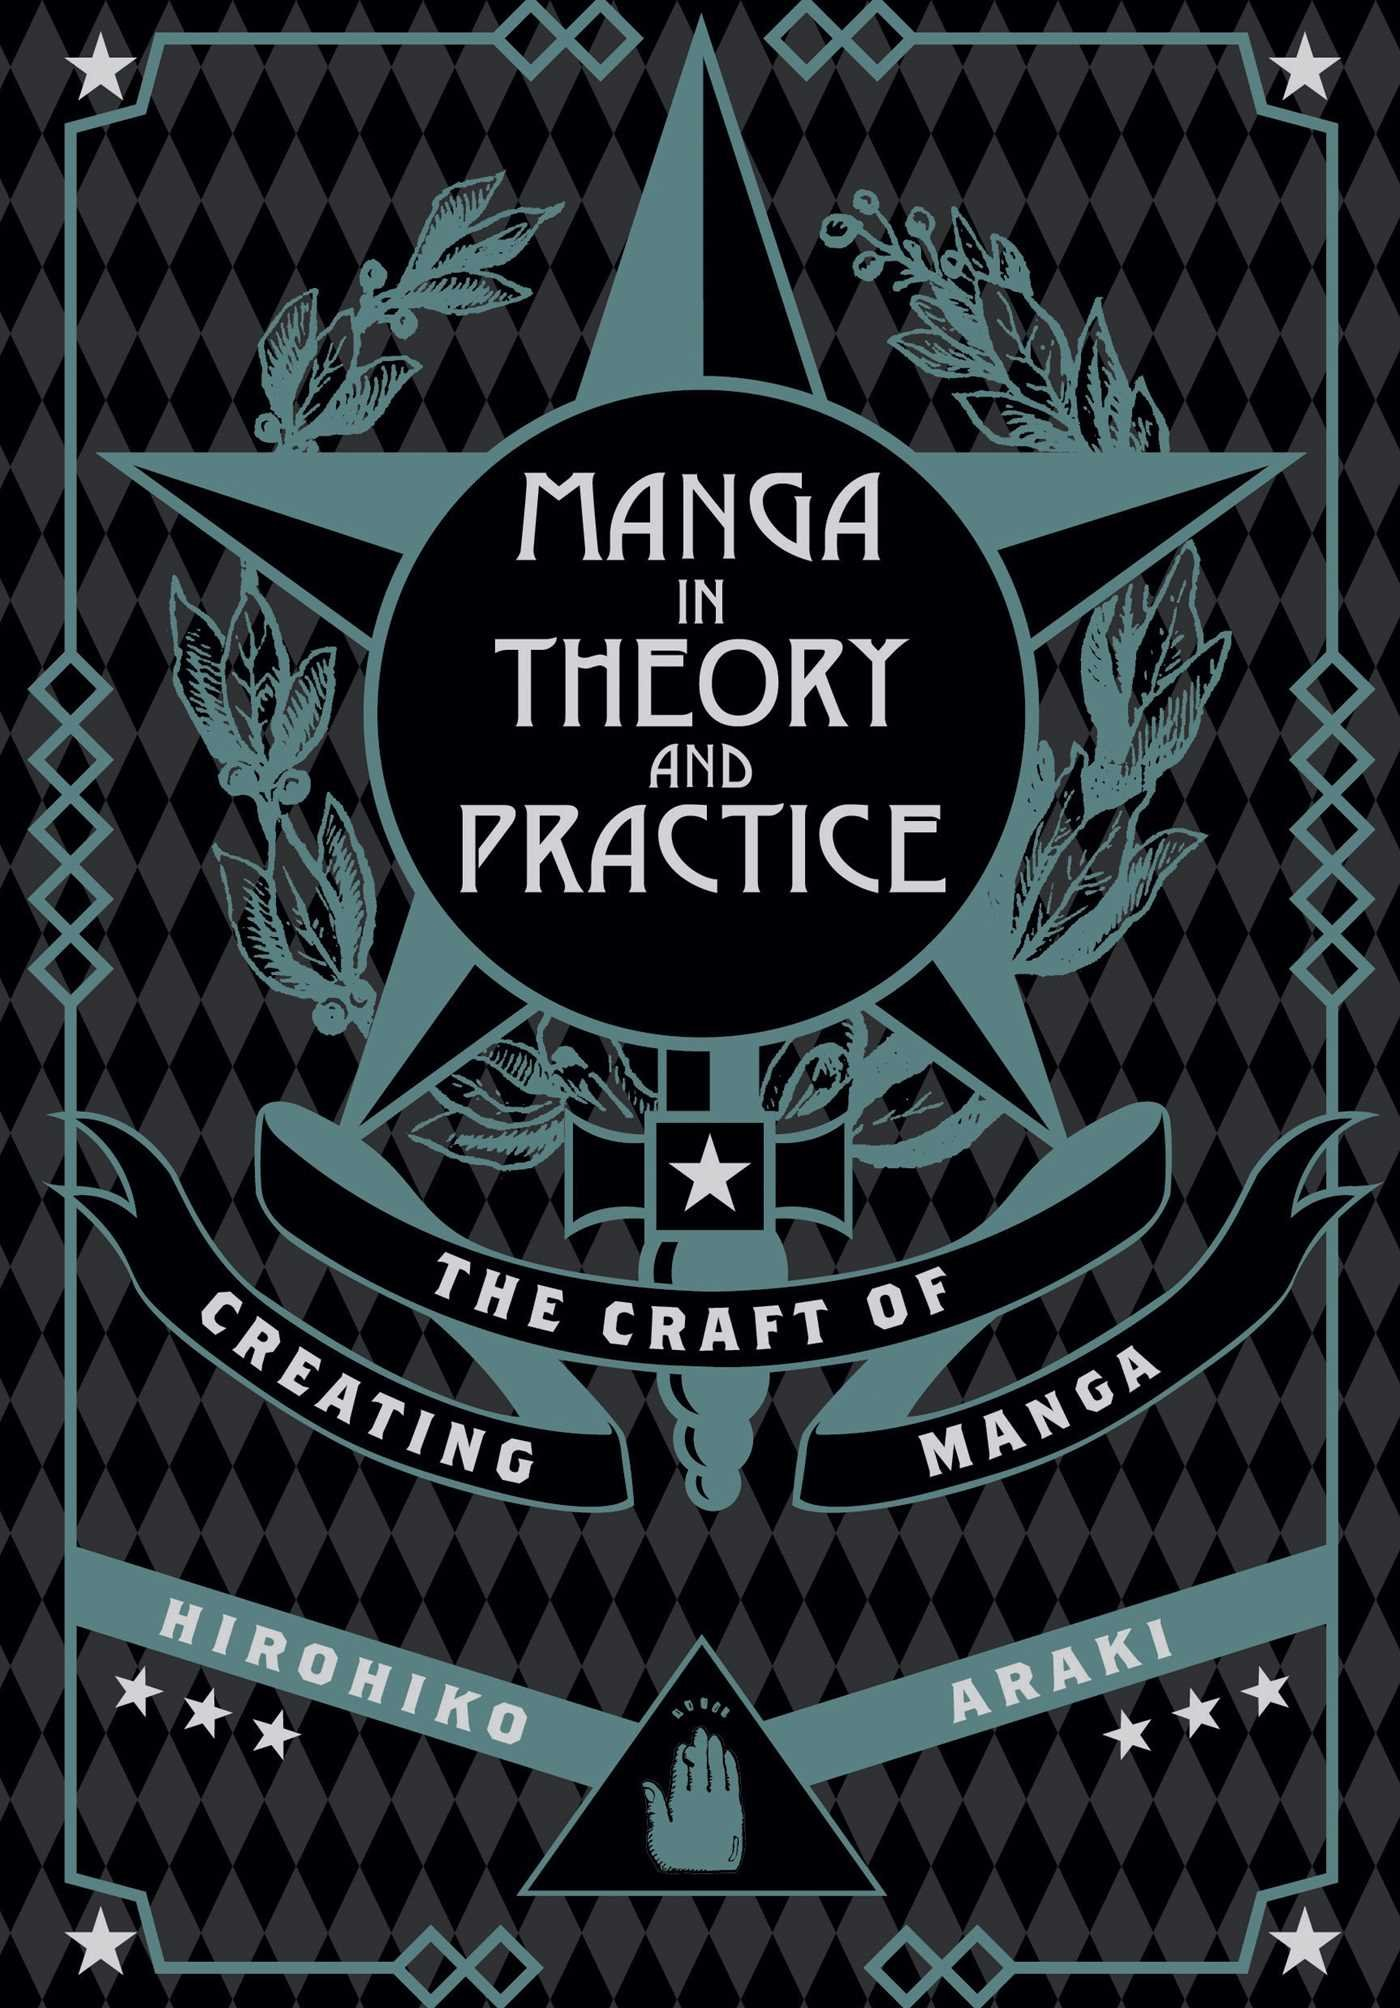 Manga in Theory and Practice: The Craft of Creating Manga by VIZ Media LLC